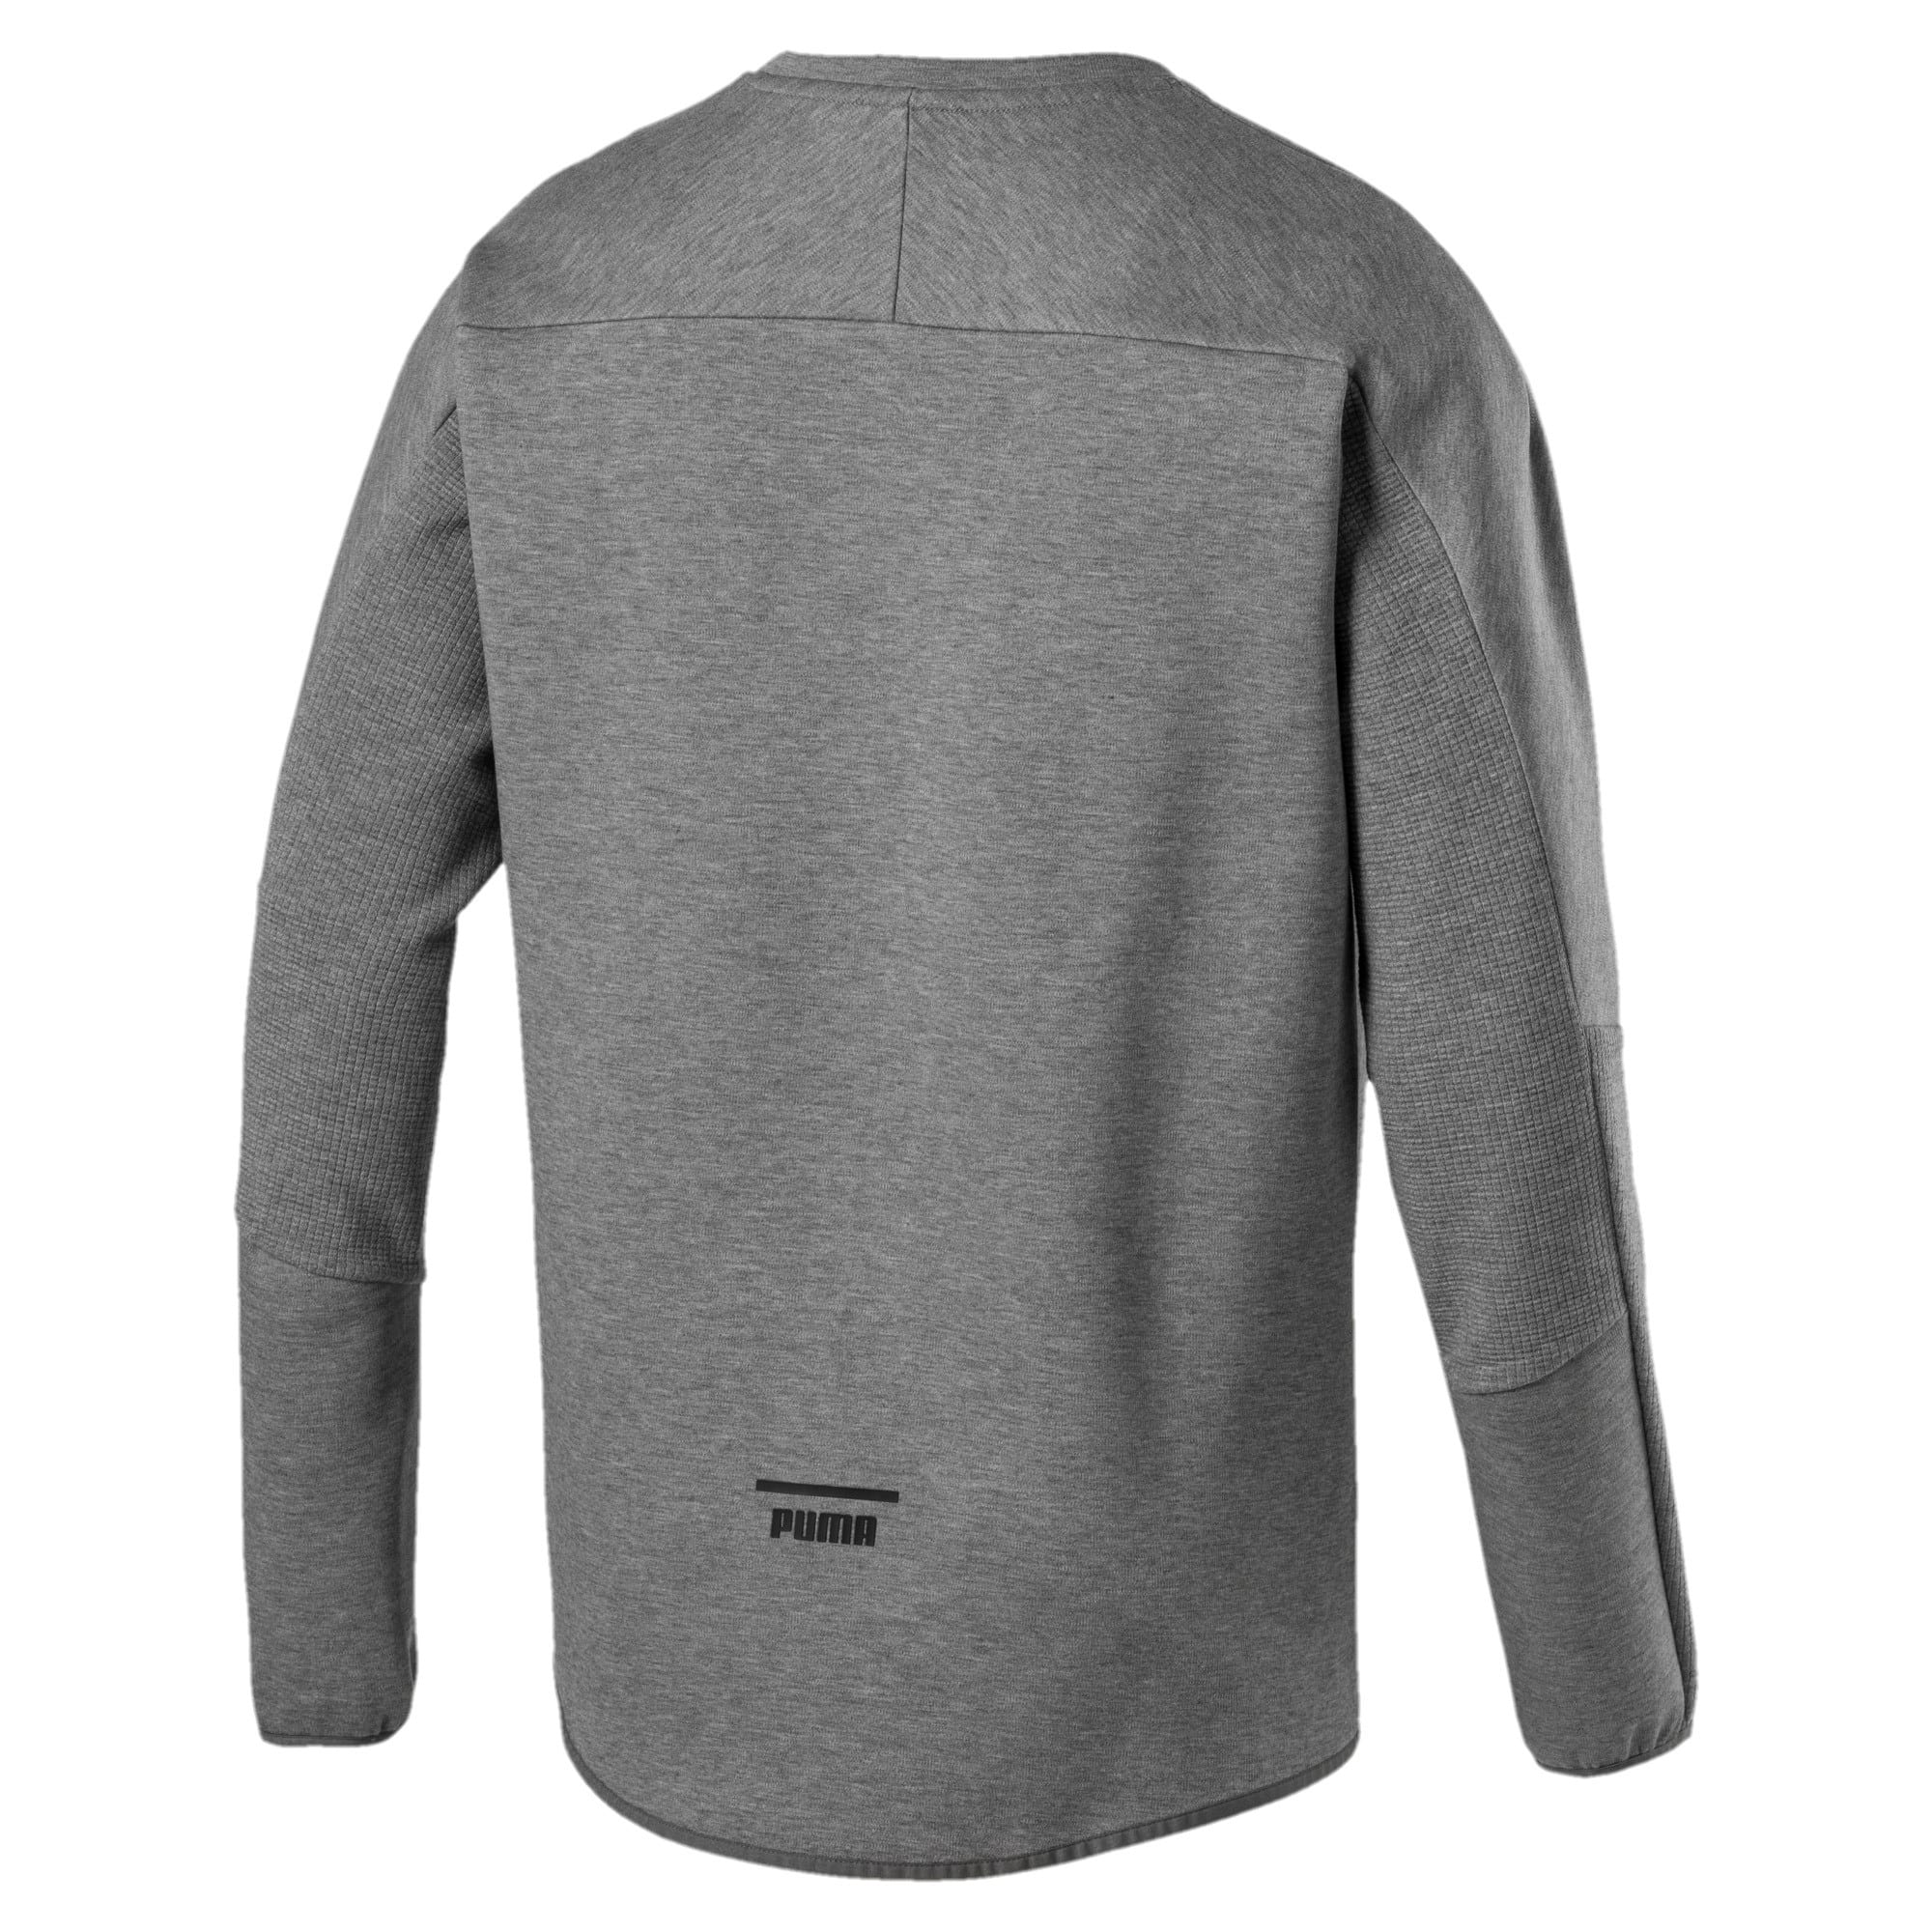 Thumbnail 4 of Pace Crew Neck Men's Sweatshirt, Medium Gray Heather, medium-IND